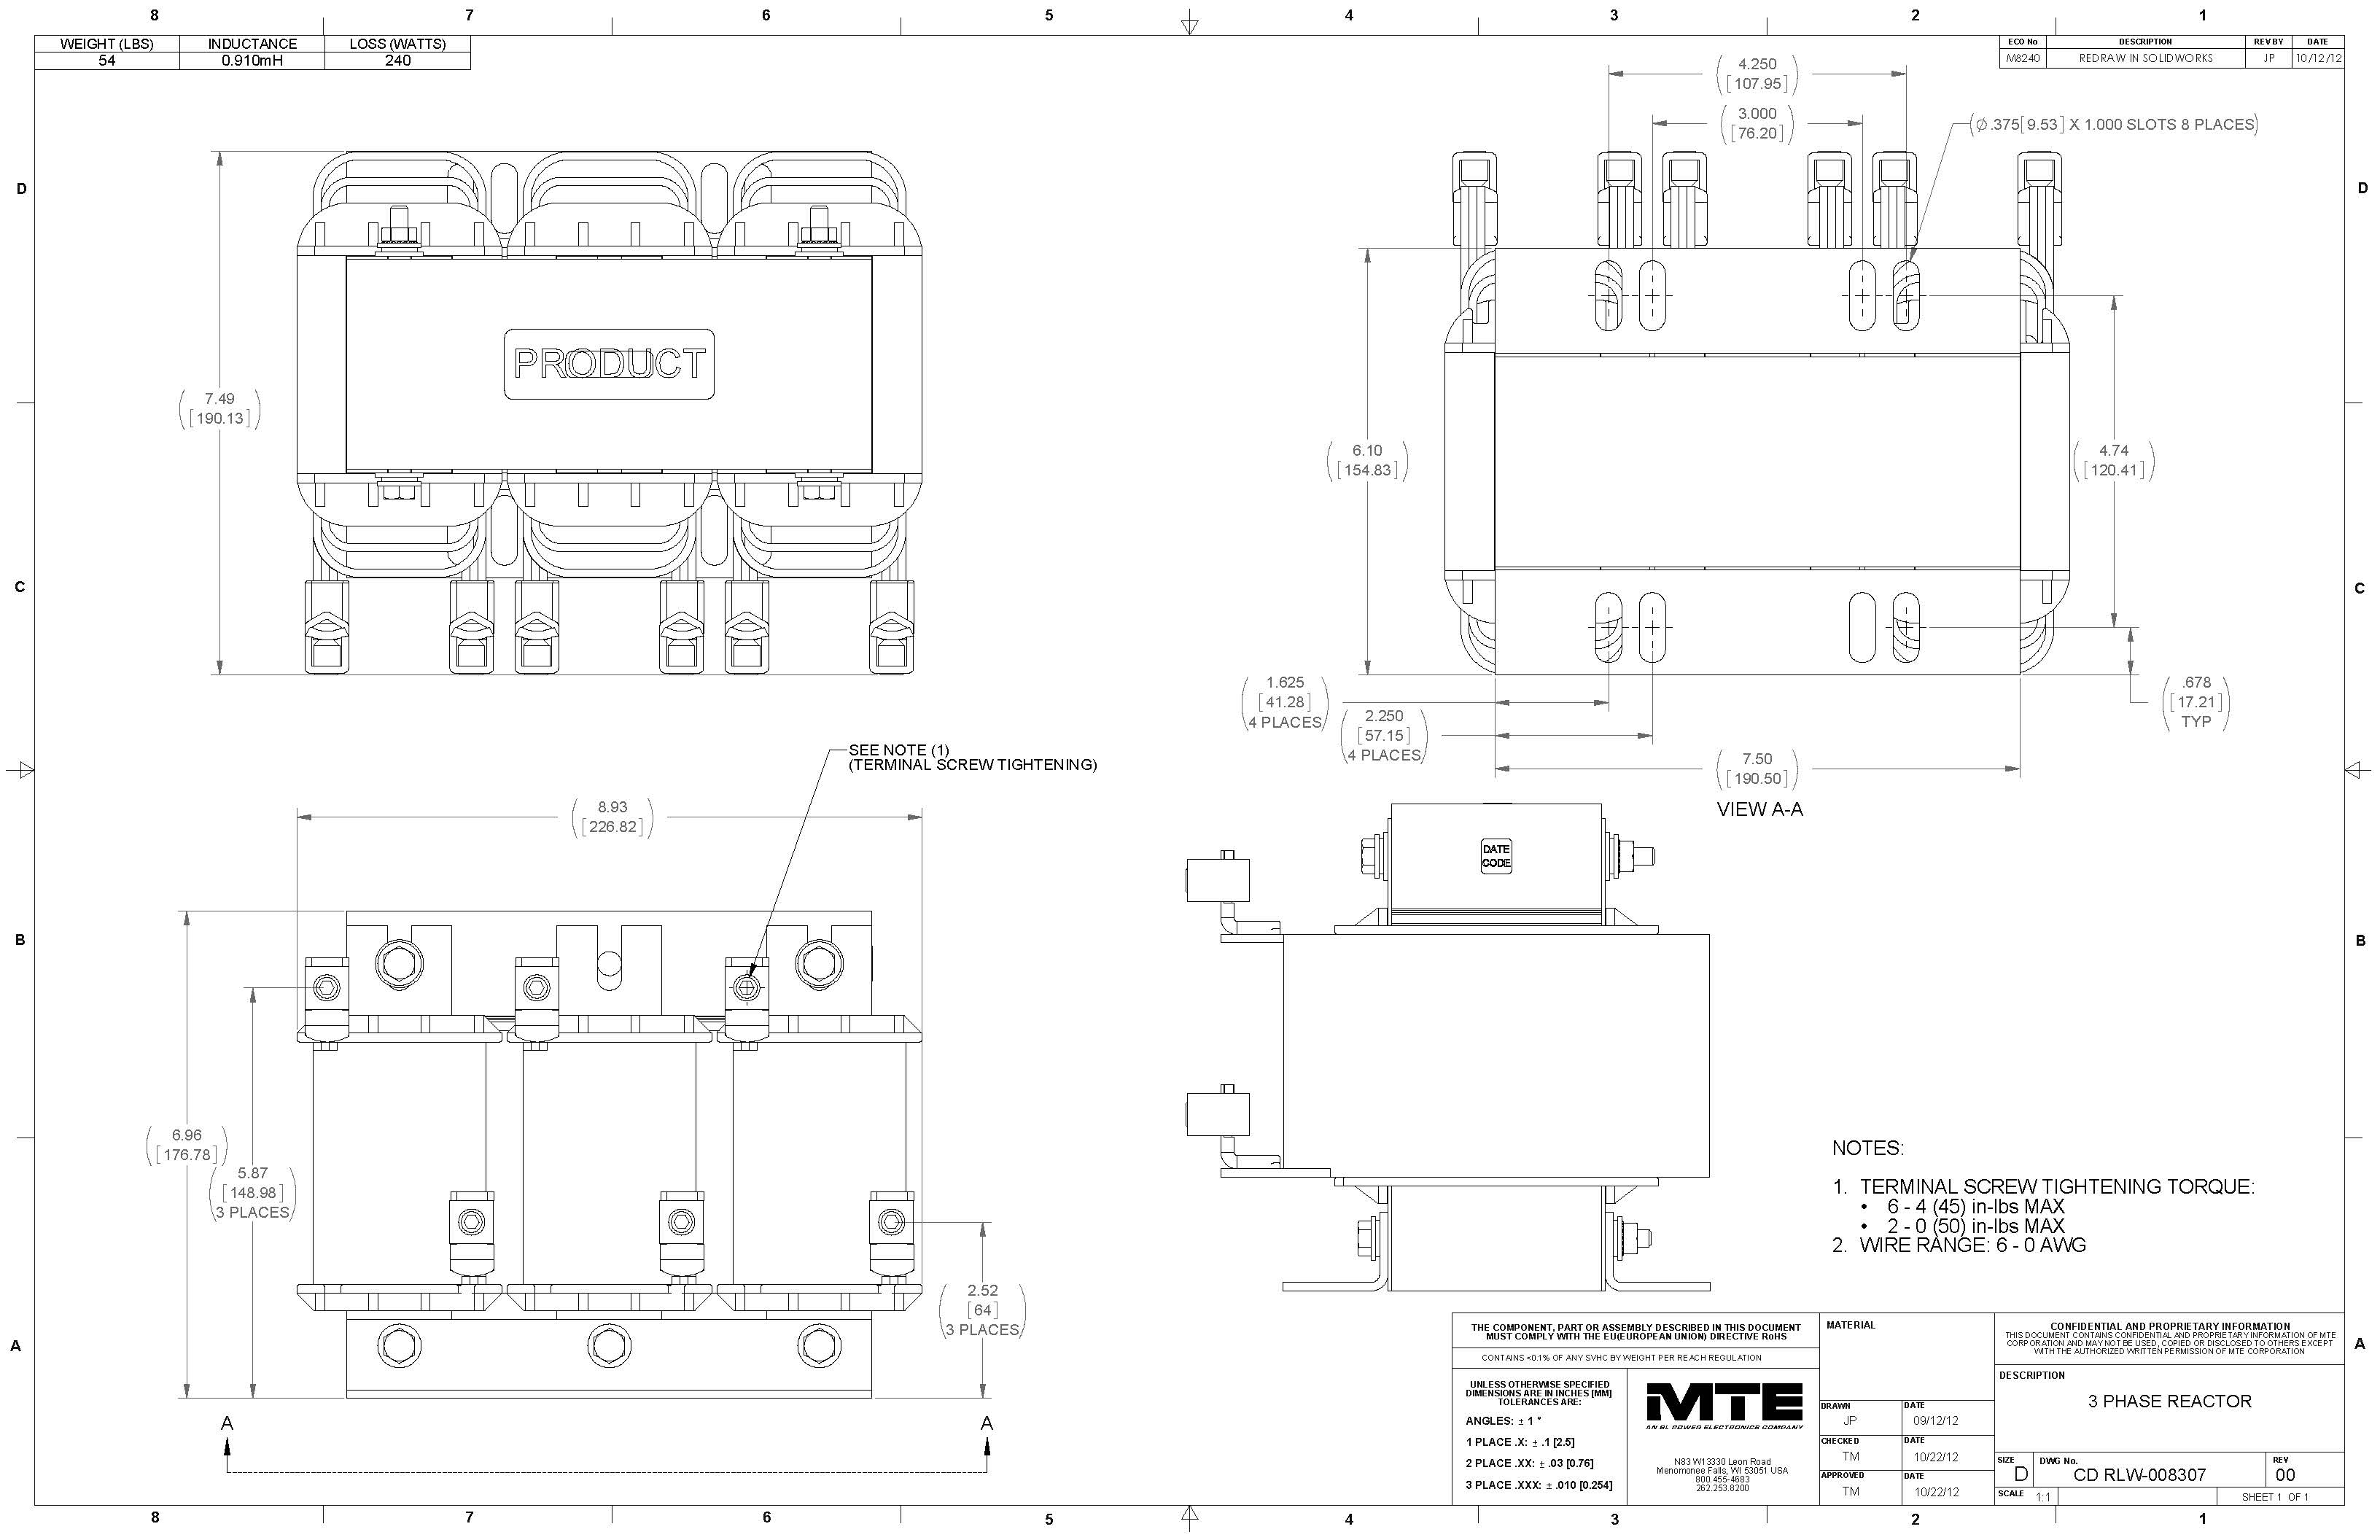 Image of an MTE Reactor RLW-008307